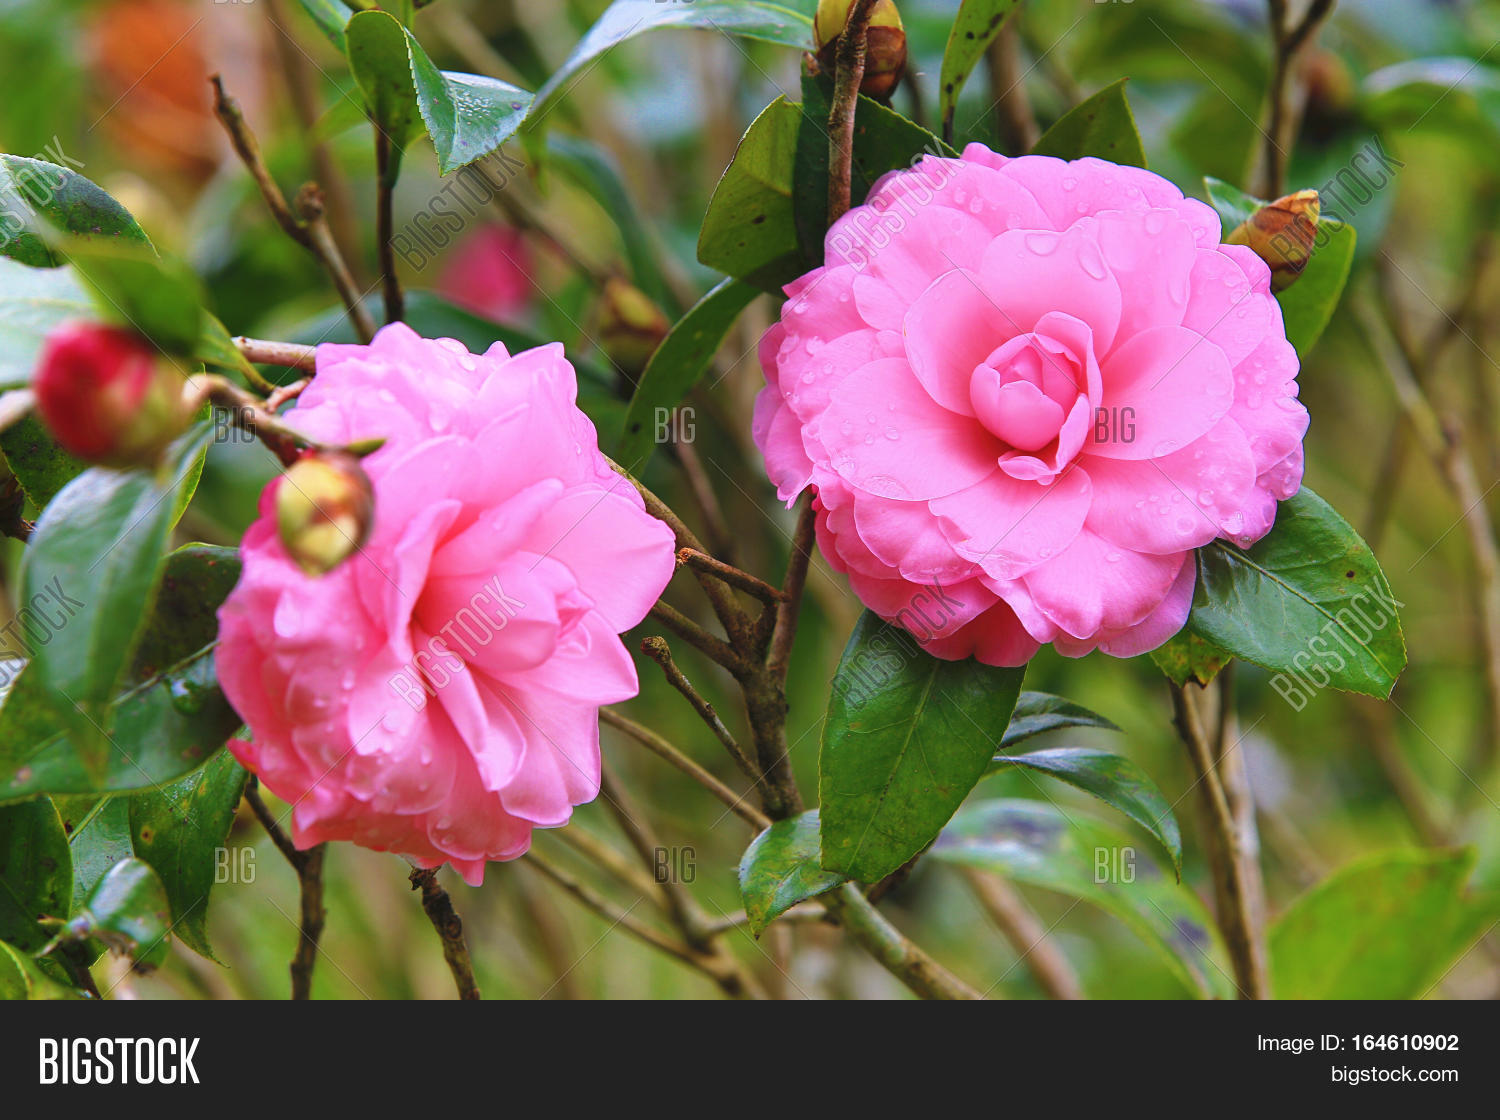 Pink Camellia Flowers Image Photo Free Trial Bigstock